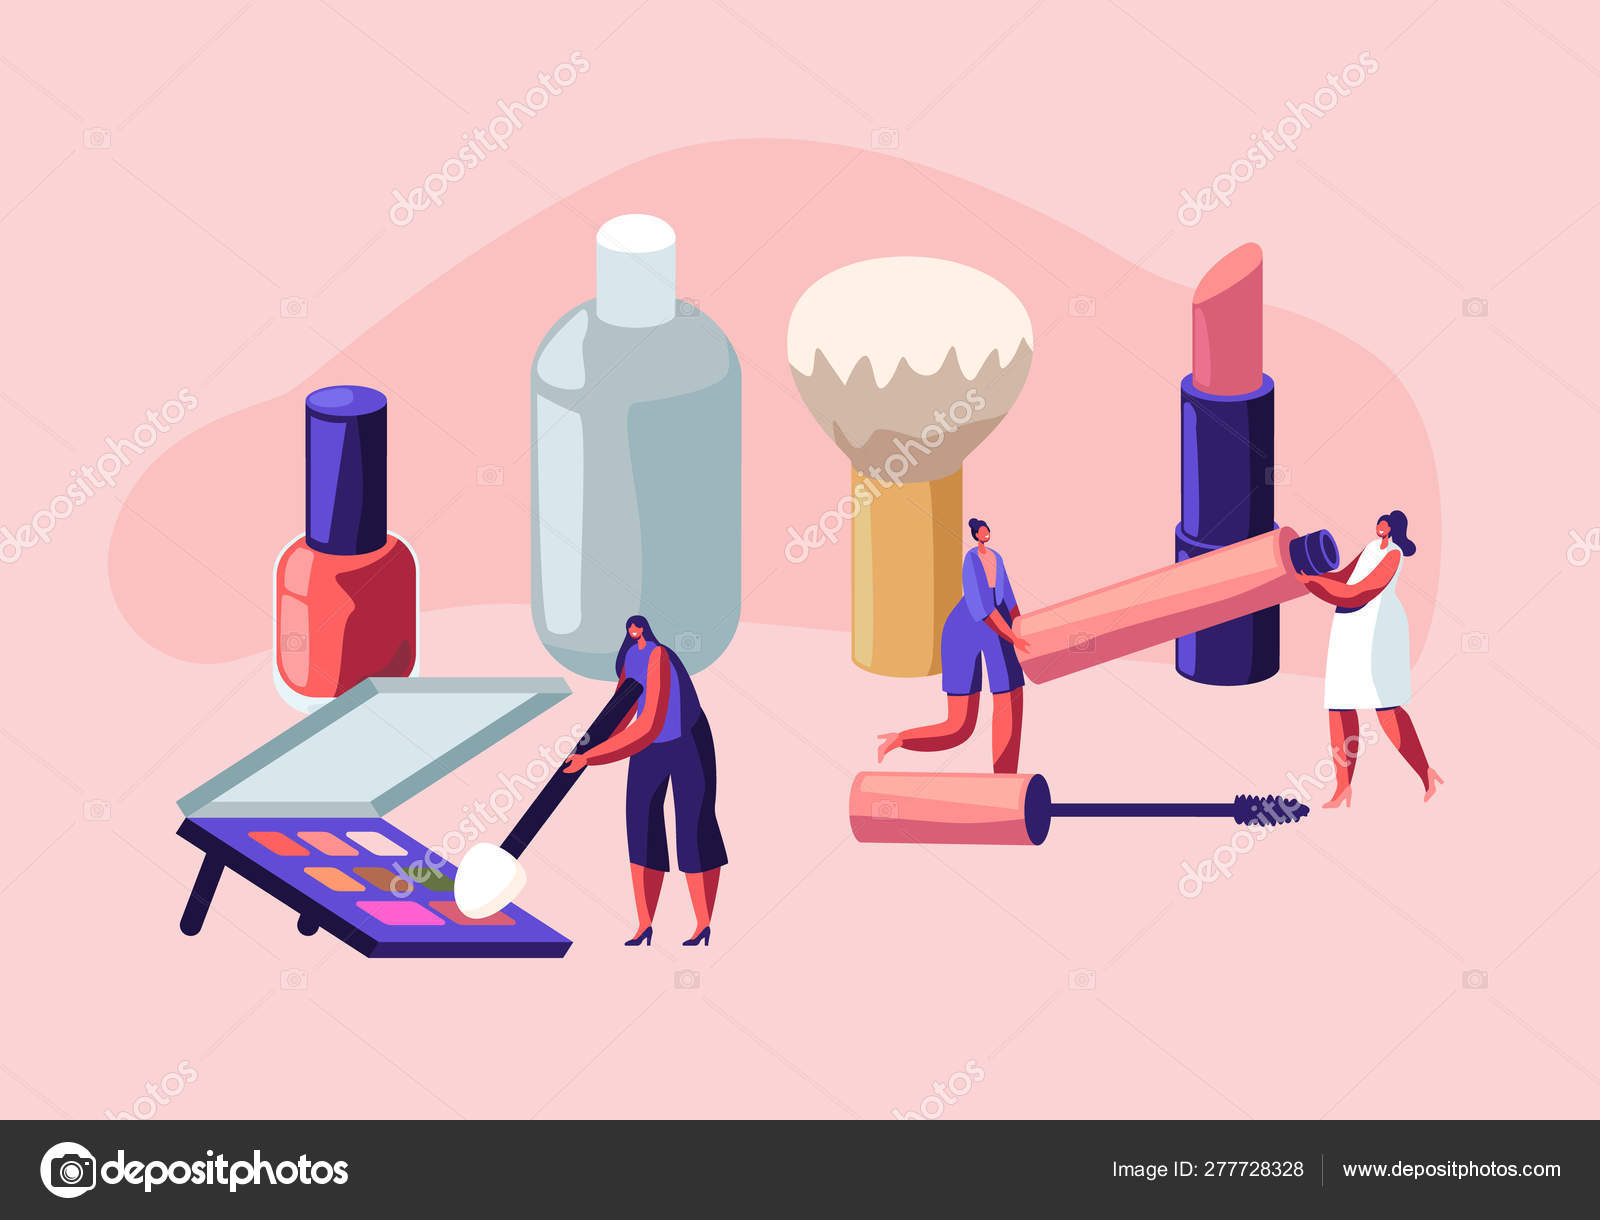 Women Spend Time In Beautician Parlor Female Characters Testing Skin Care Products In Beauty Salon Makeup Courses Make Up School Cosmetics Masterclass Face Care Cartoon Flat Vector Illustration Stock Vector C